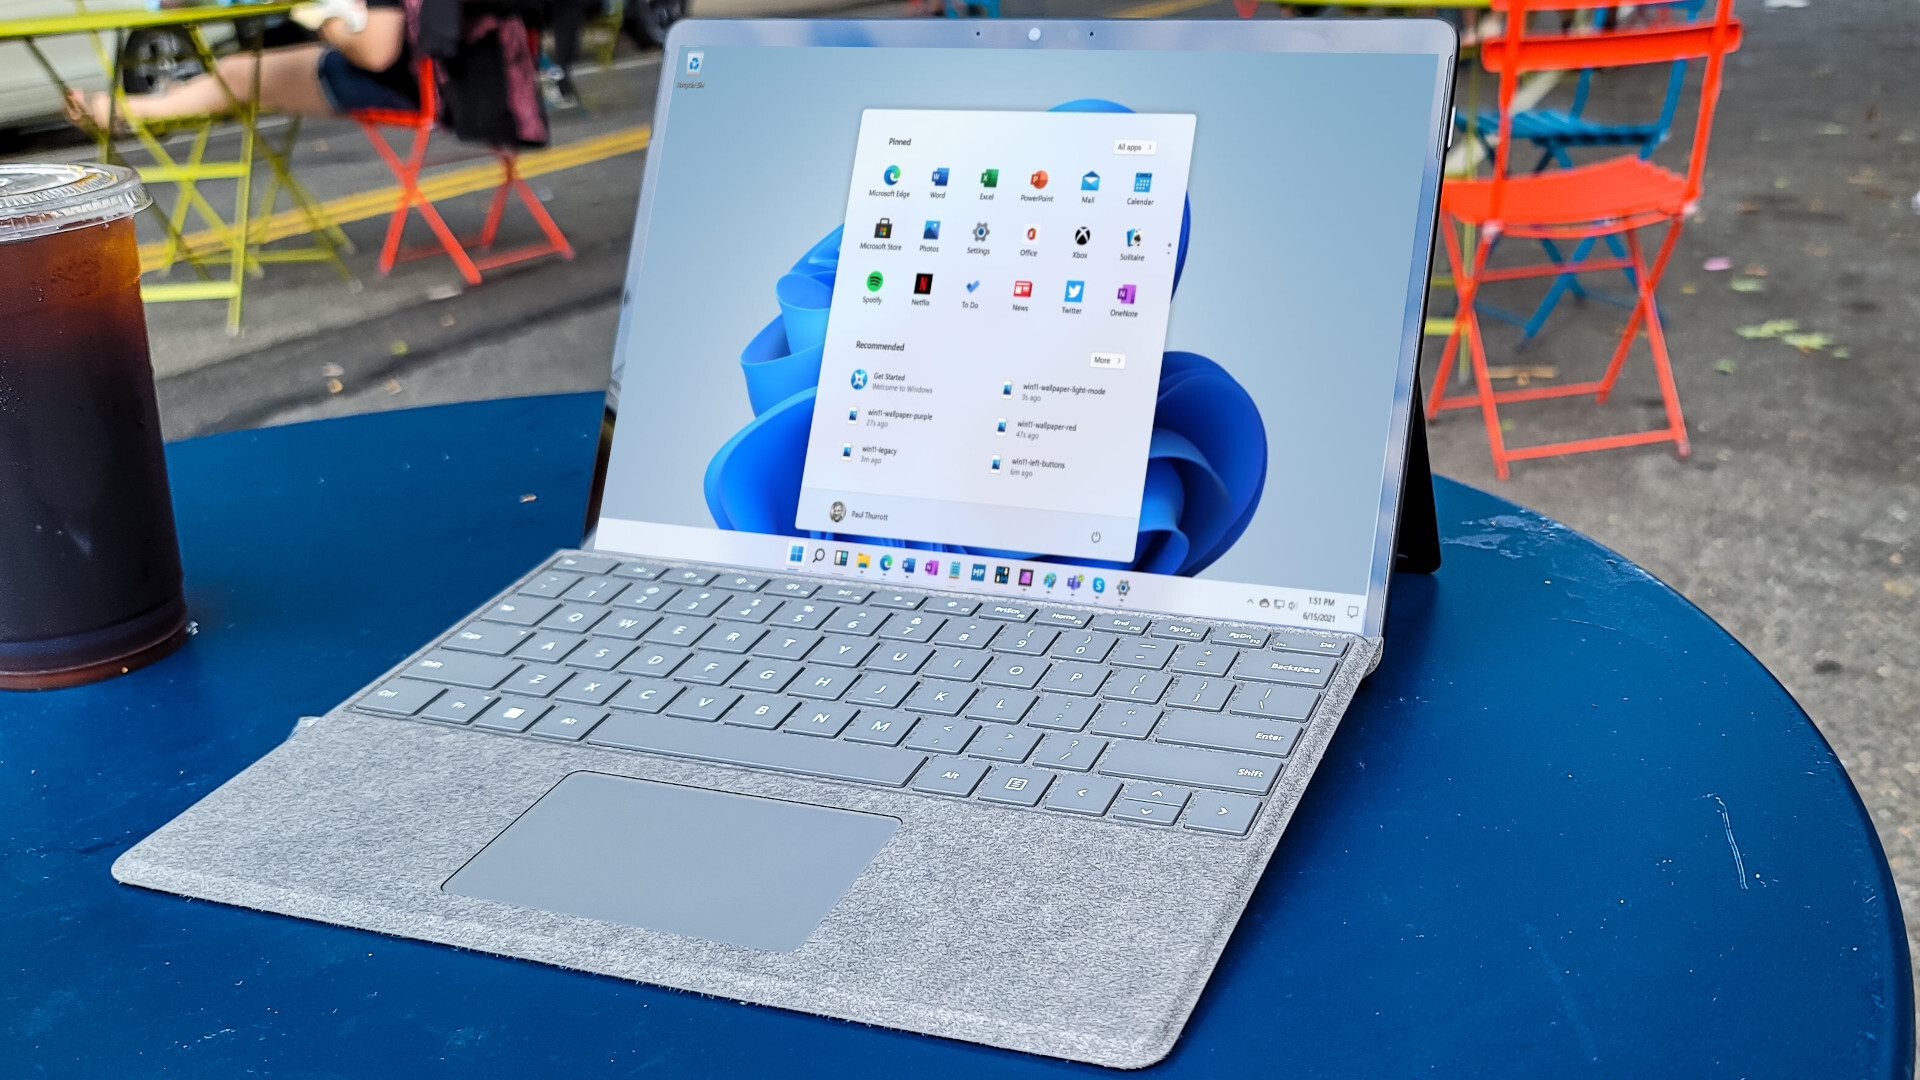 Surface Pro 8 outside on a table showing Windows 11 desktop